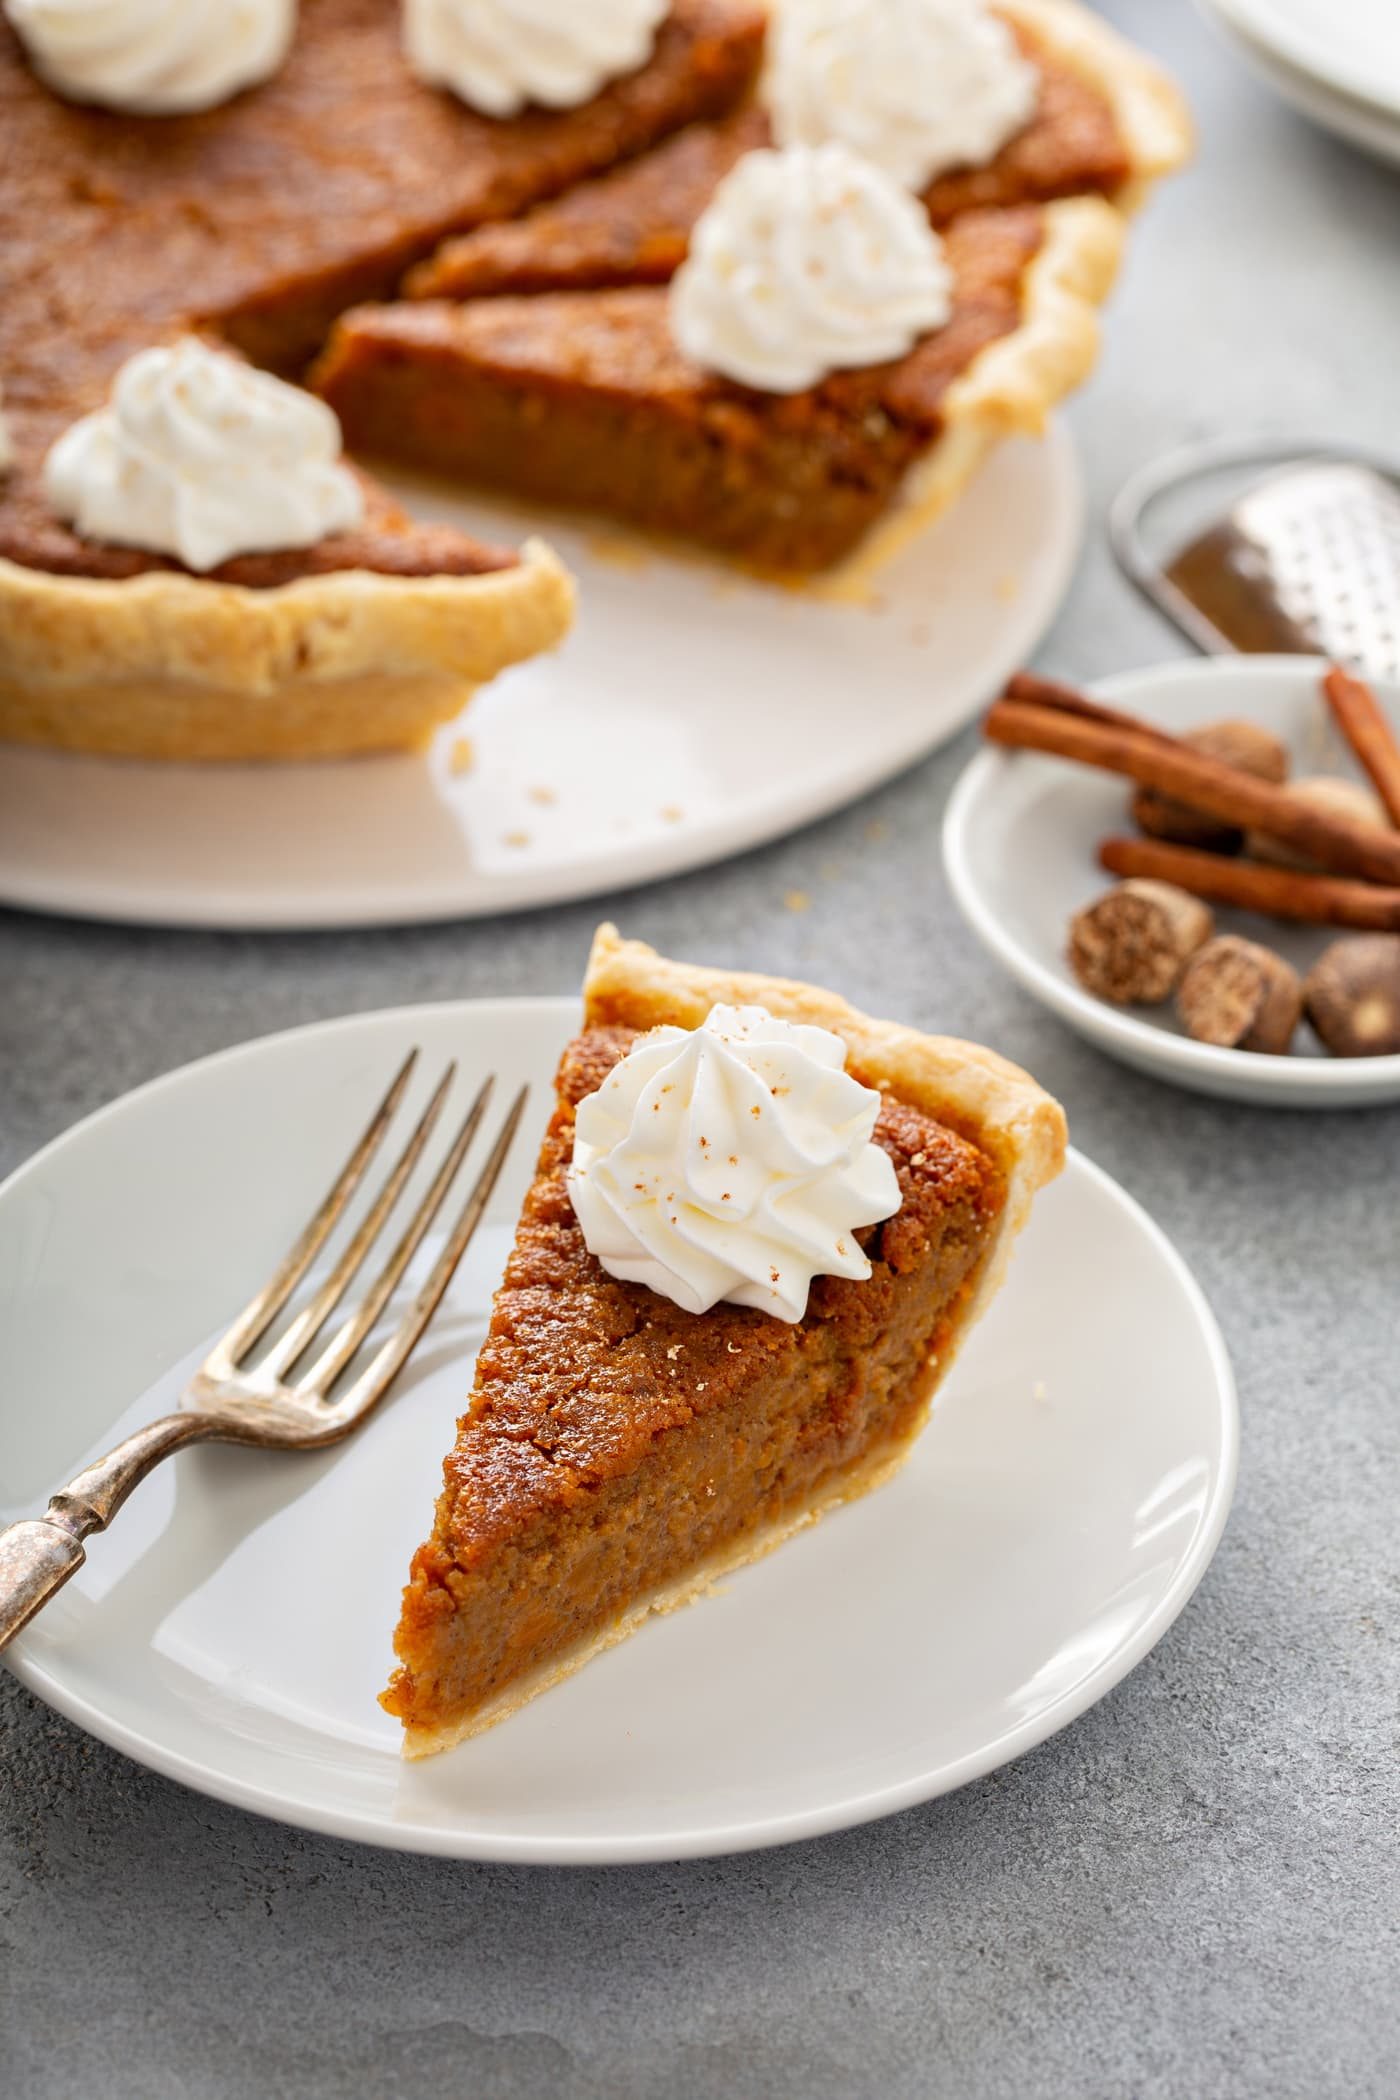 A photo of a slice of sweet potato pie sitting on a white plate with the whole sweet potato pie in the background.